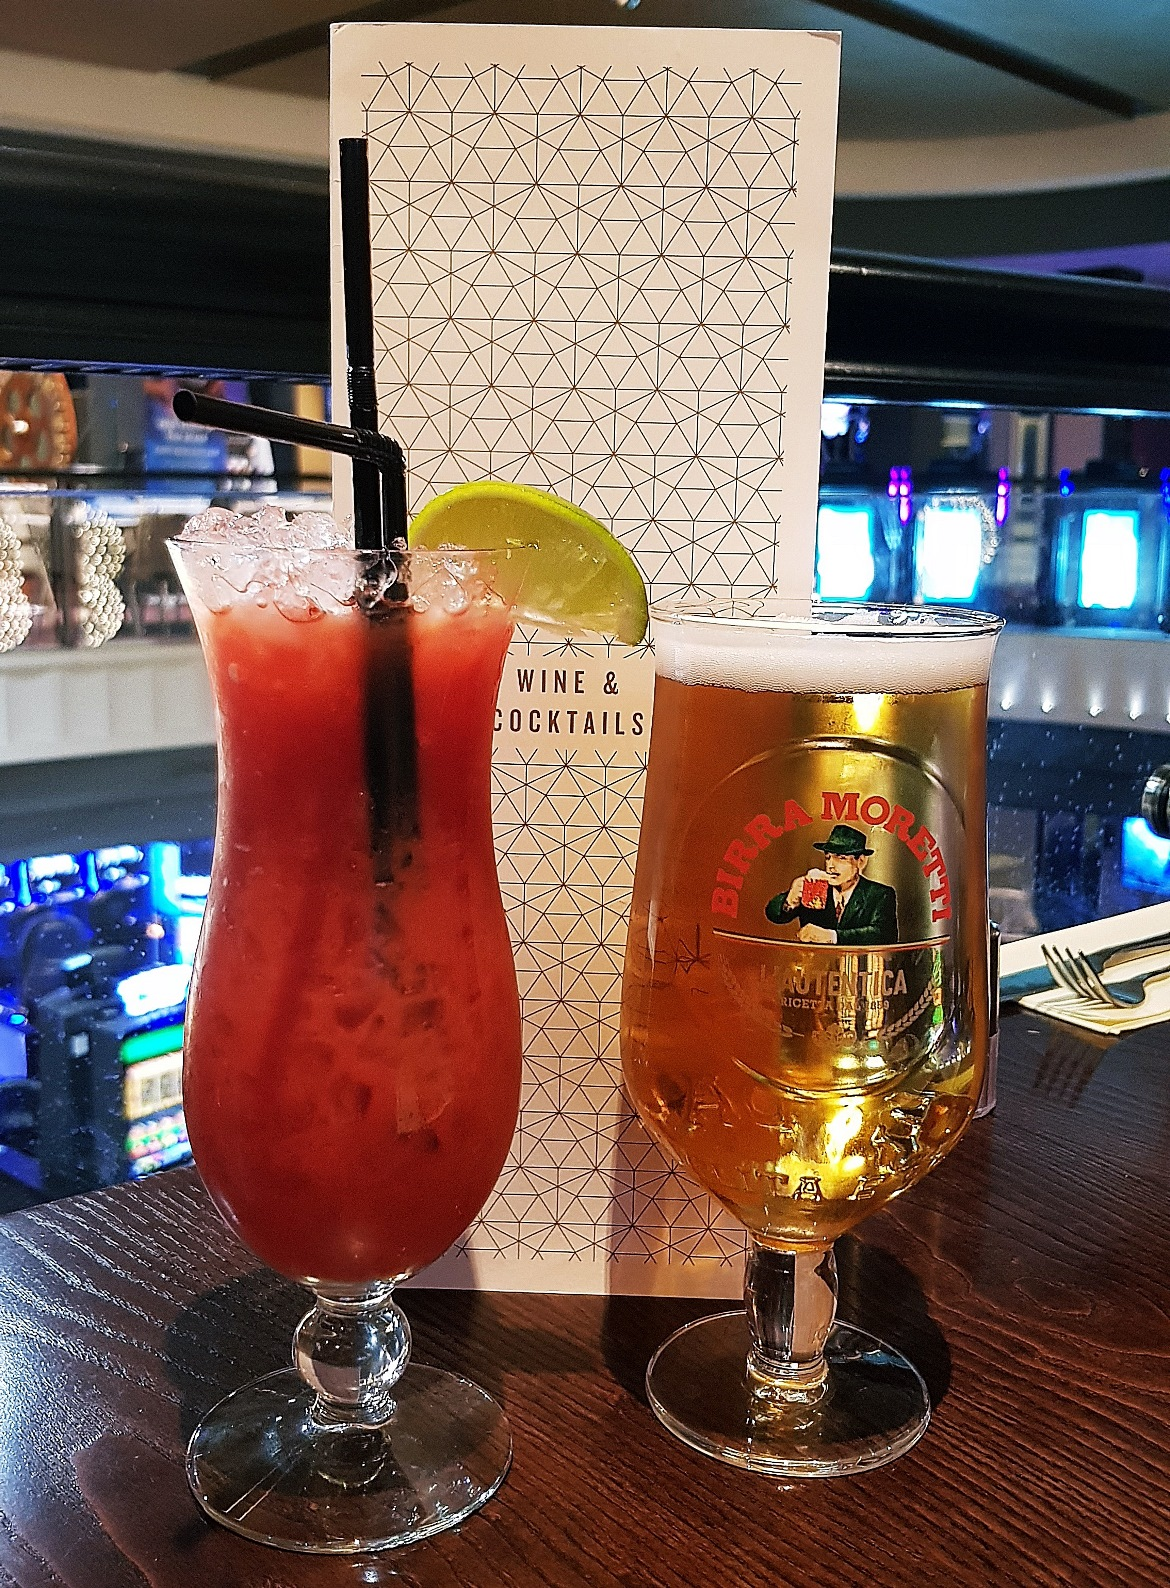 Strawberry daiquiri and beer - Grosvenor Casino Leeds review by BeckyBecky Blogs